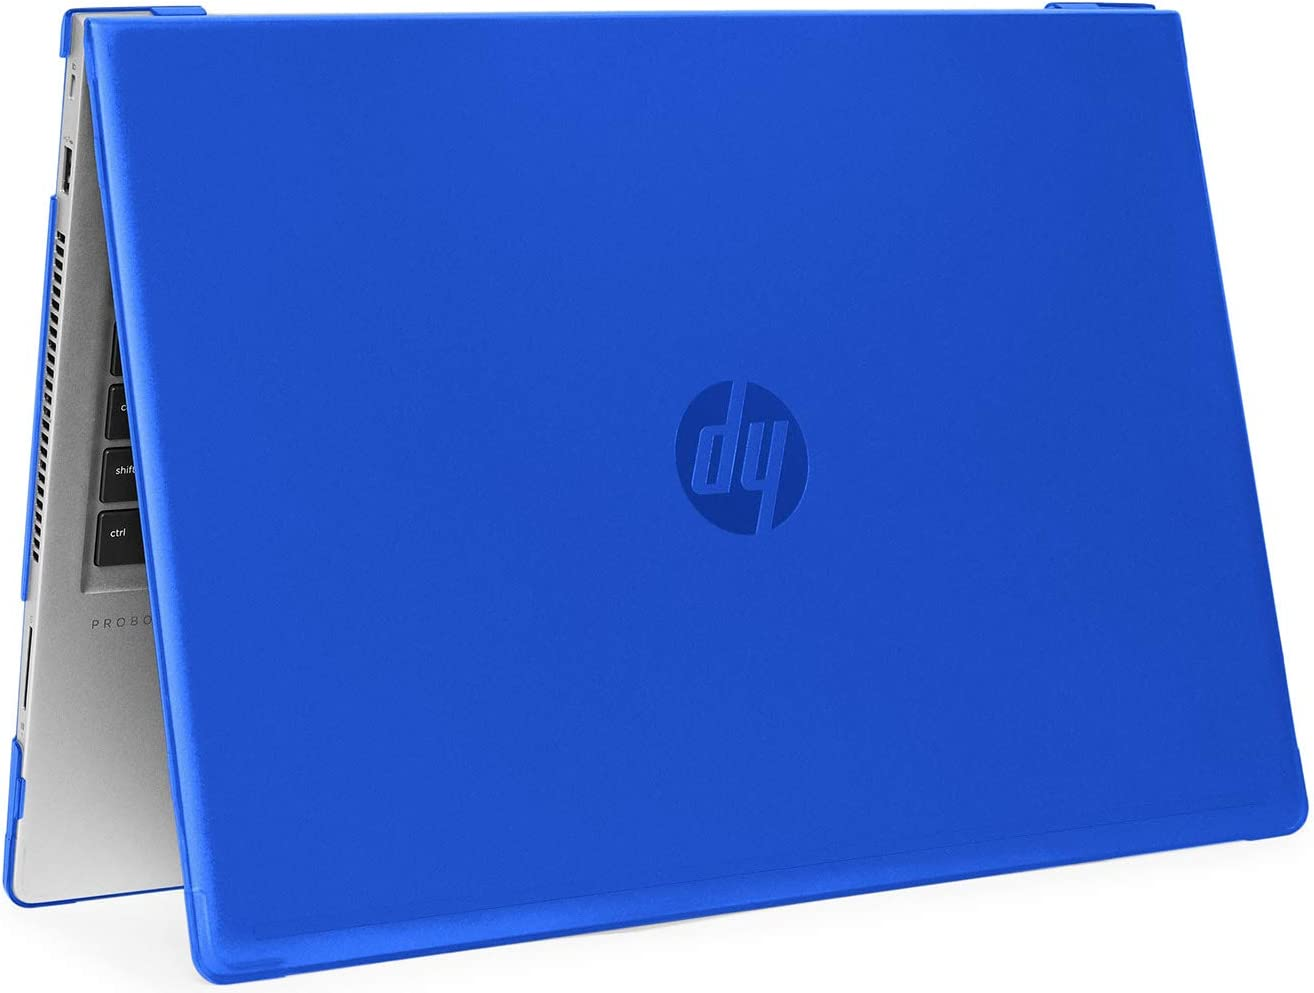 "mCover Hard Shell Case for 2019 15.6"" HP ProBook 450/455 G6 Series (NOT Compatible with Older HP ProBook 450/455 G1 / G2 / G3 / G4 / G5 Series) Notebook PC (PB450-G6 Blue)"